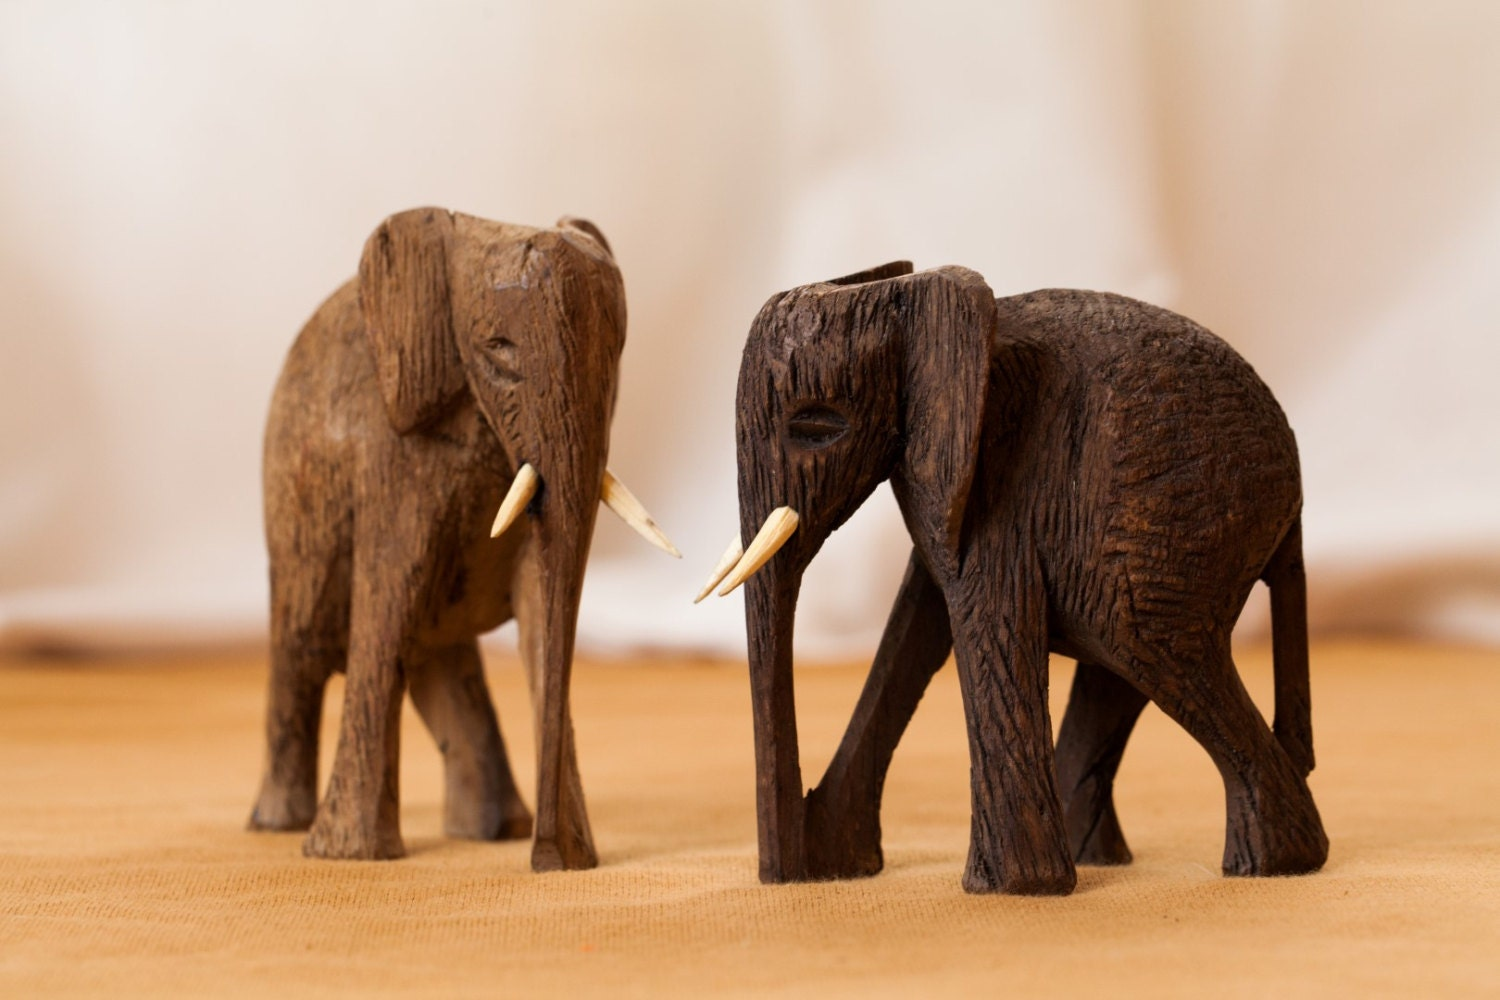 Elephant Wood Statues African Art African Decor By Africadecor: african elephant home decor